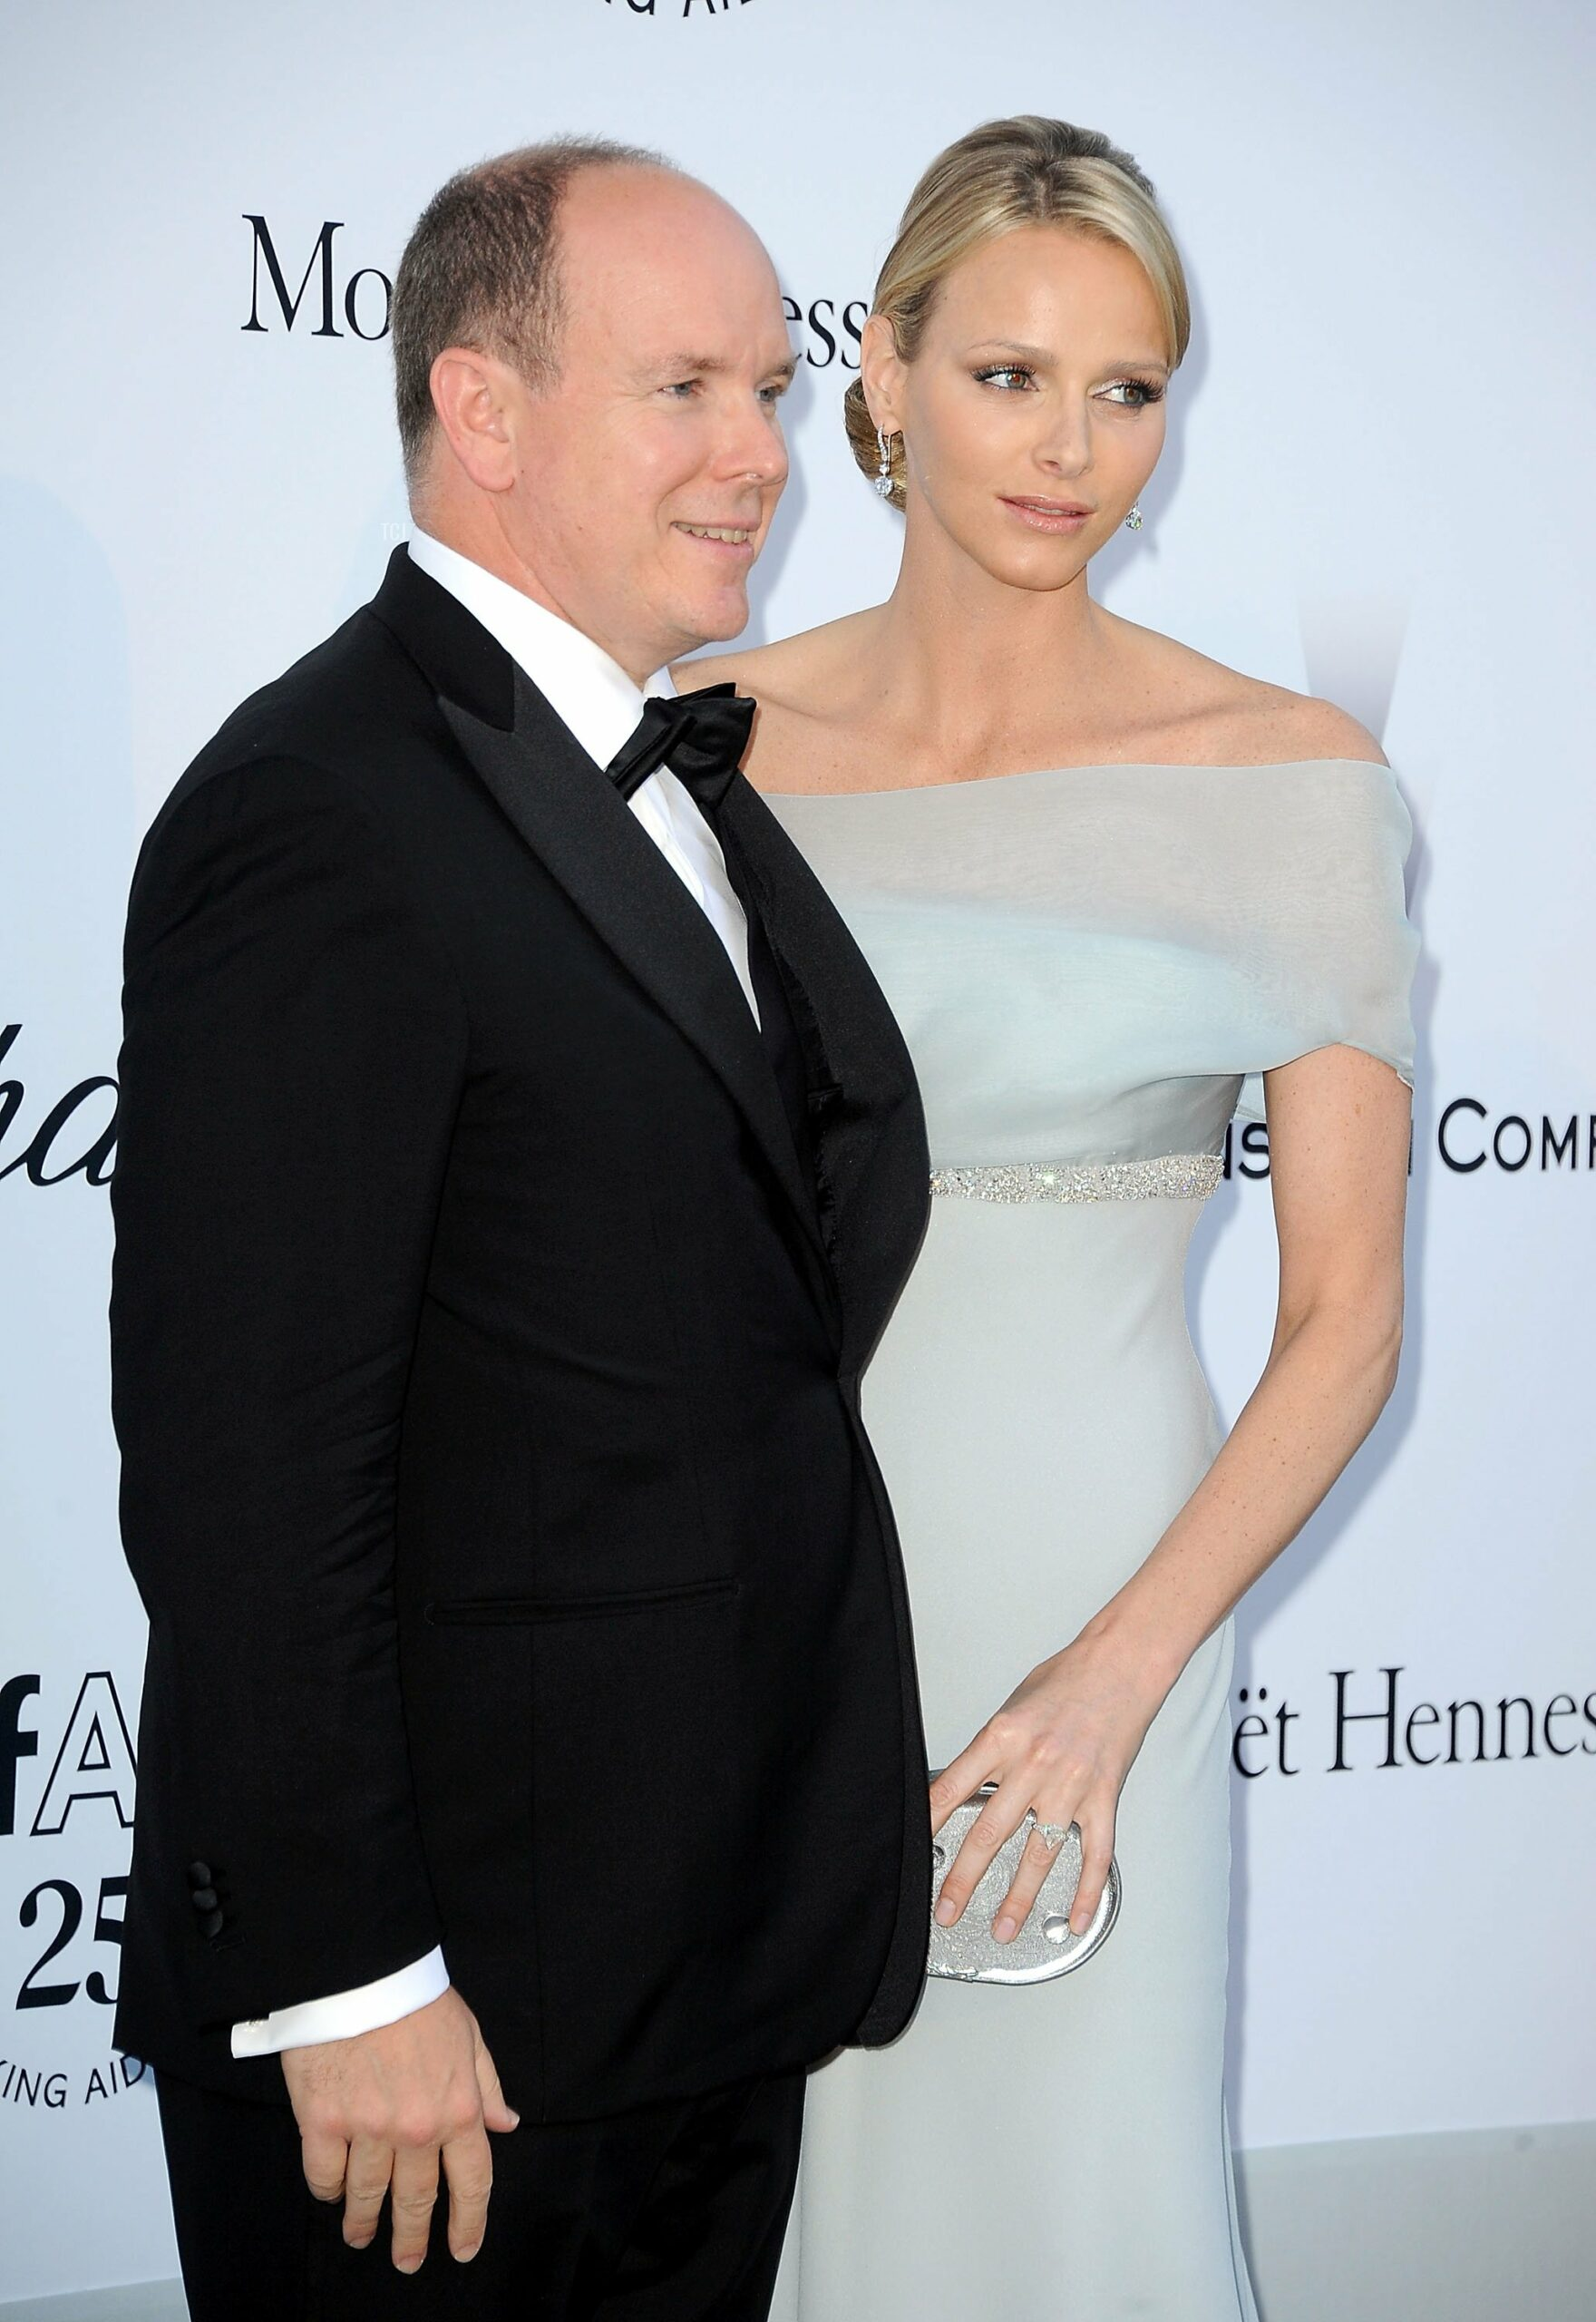 Charlene Wittstock and Prince Albert II of Monaco attend amfAR's Cinema Against AIDS Gala during the 64th Annual Cannes Film Festival at Hotel Du Cap on May 19, 2011 in Antibes